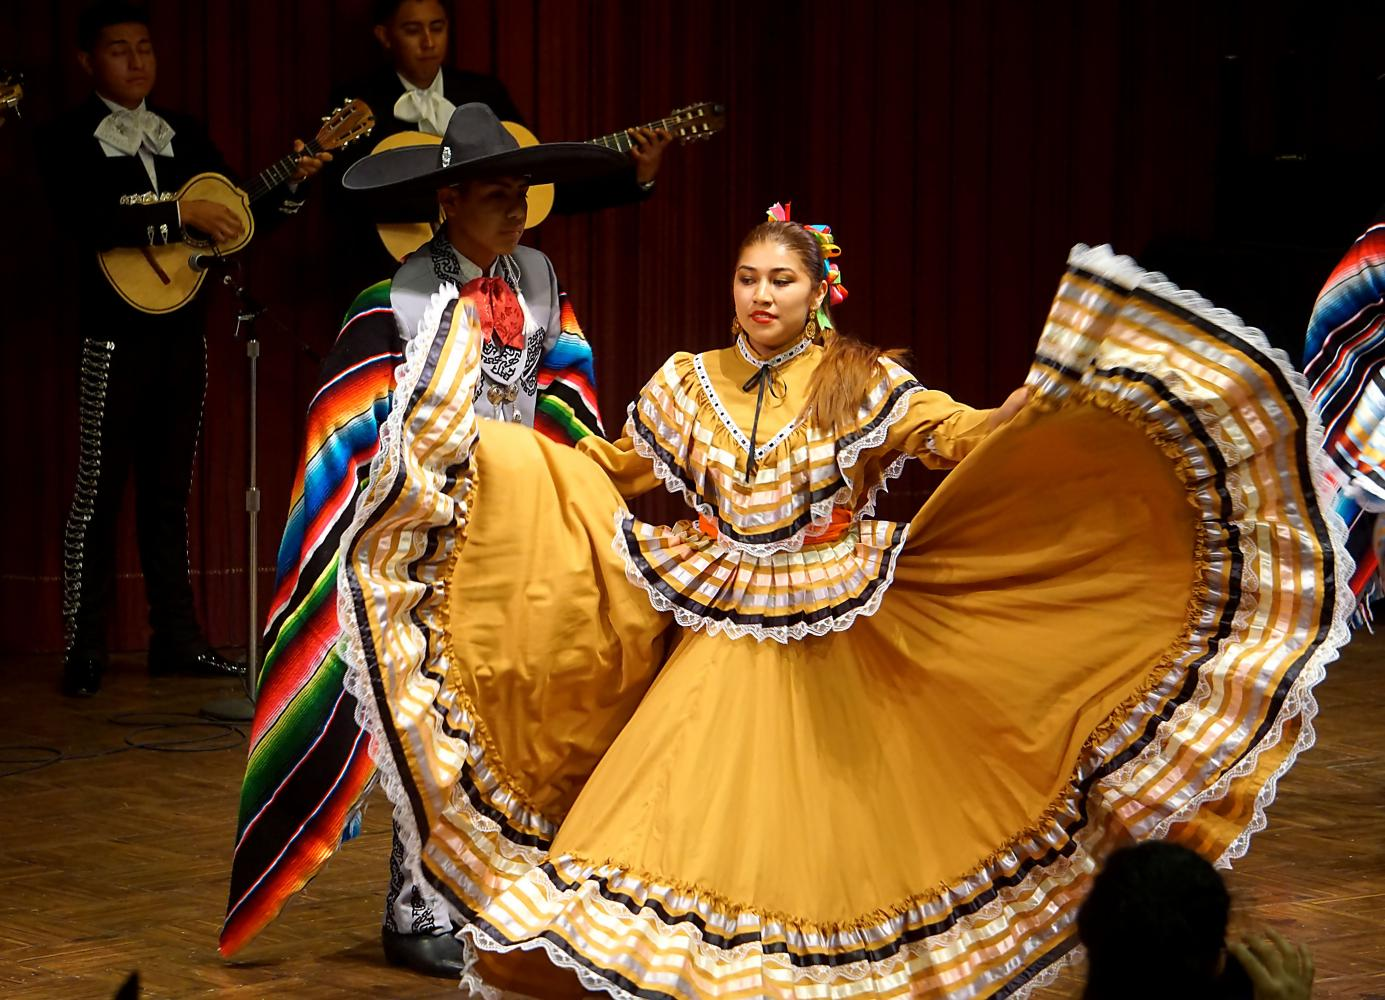 Chicano culture celebration concluded with music and dance